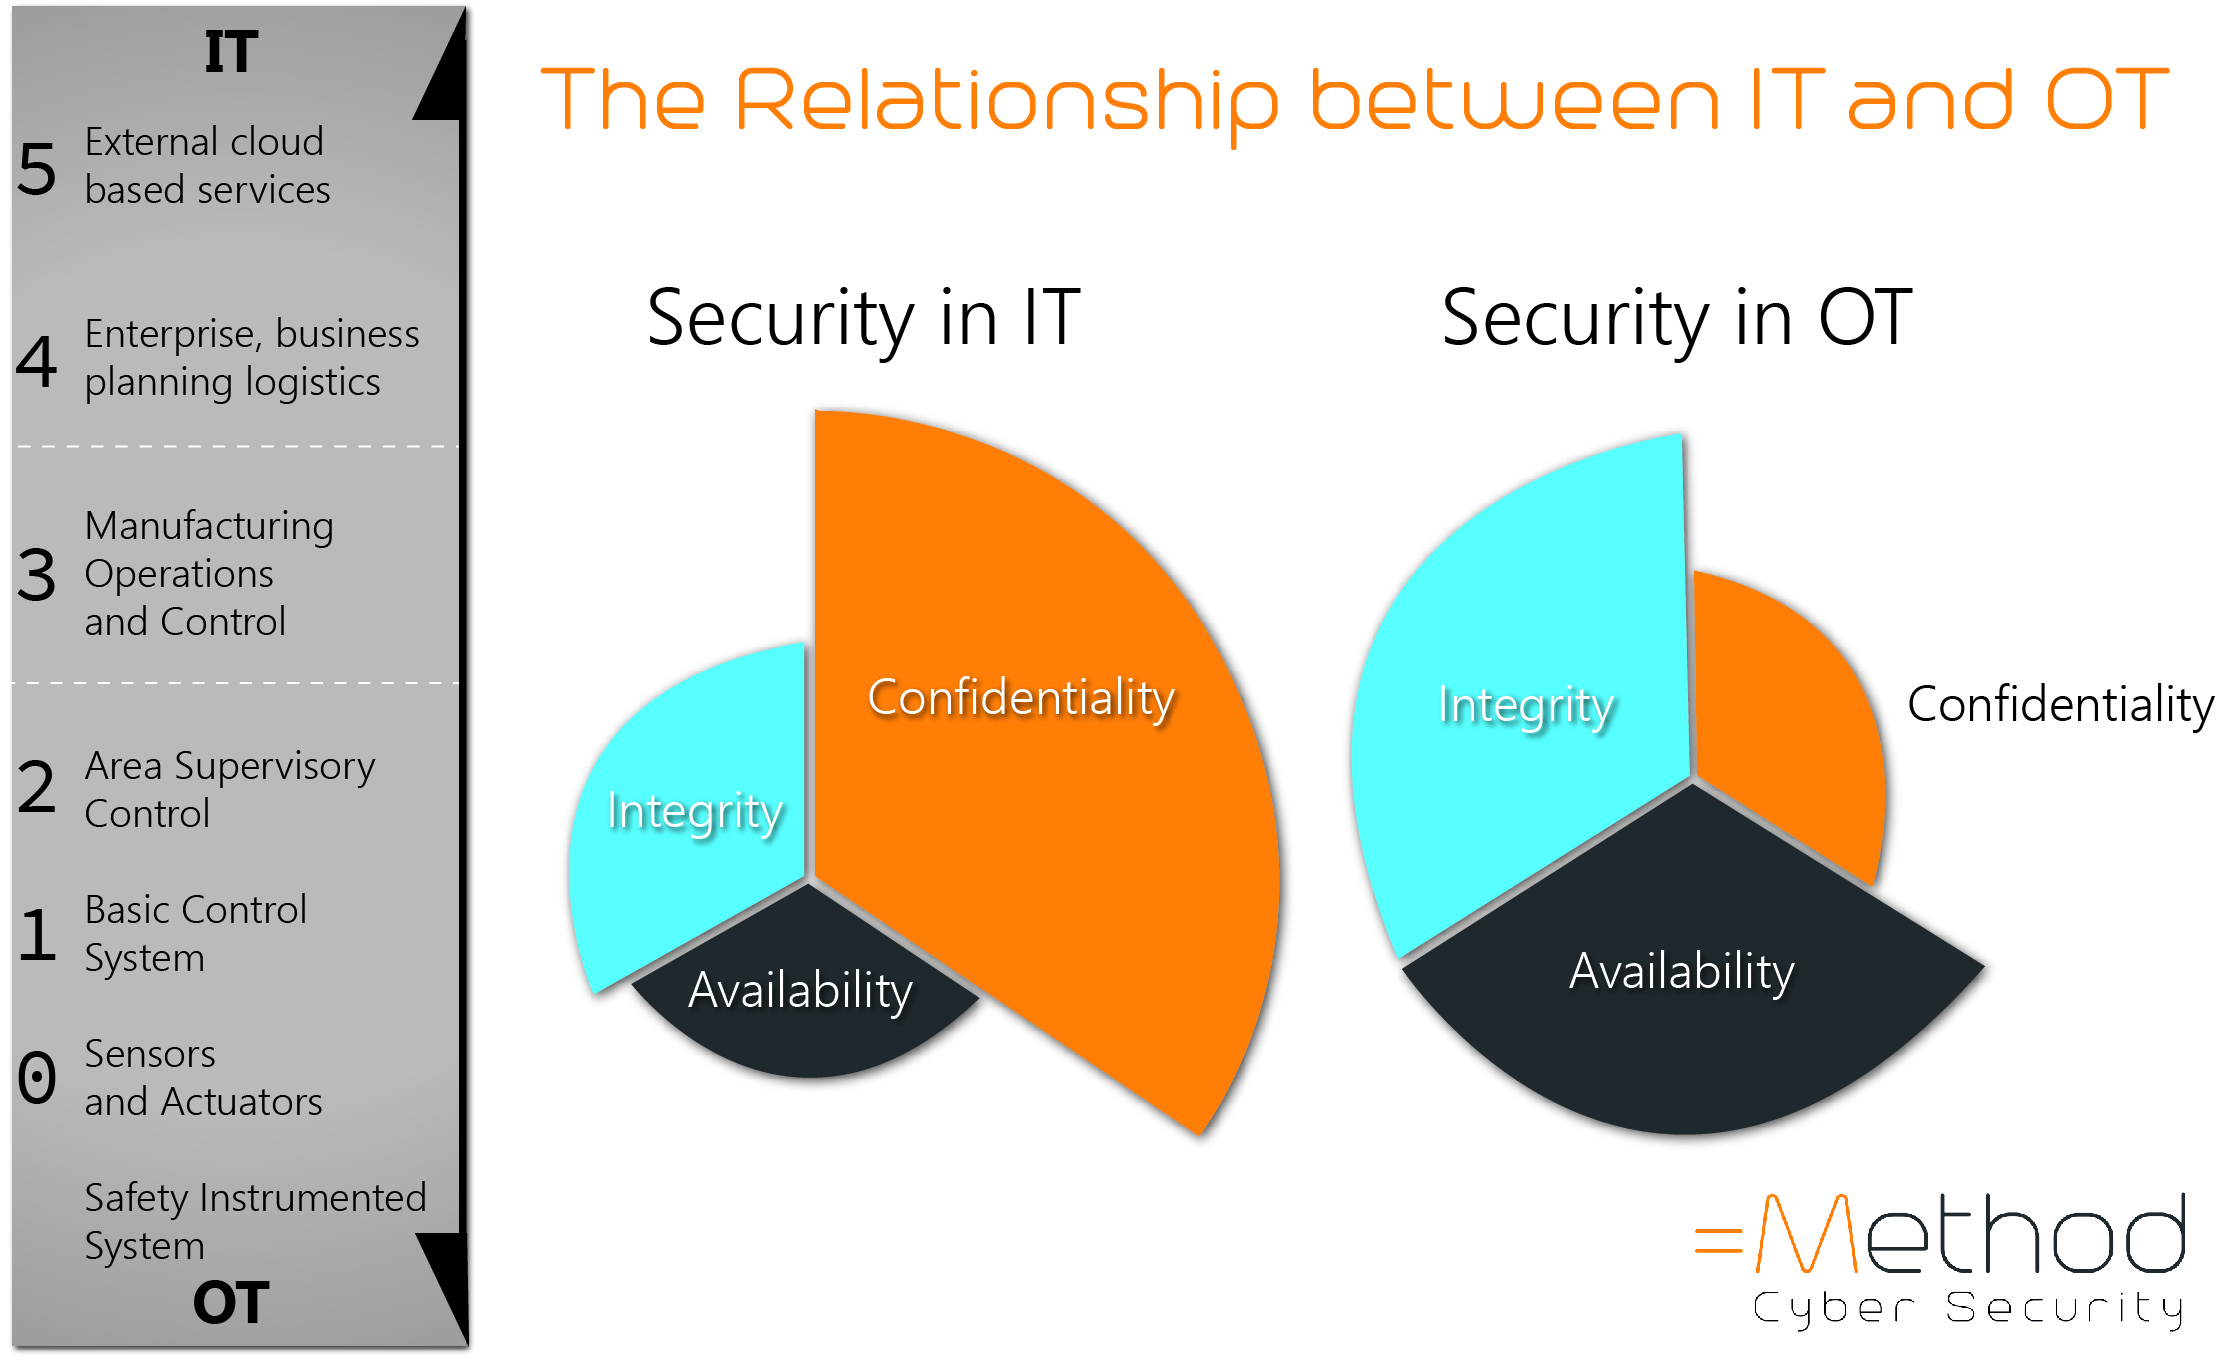 What is the relationship between IT and OT Cyber Security?